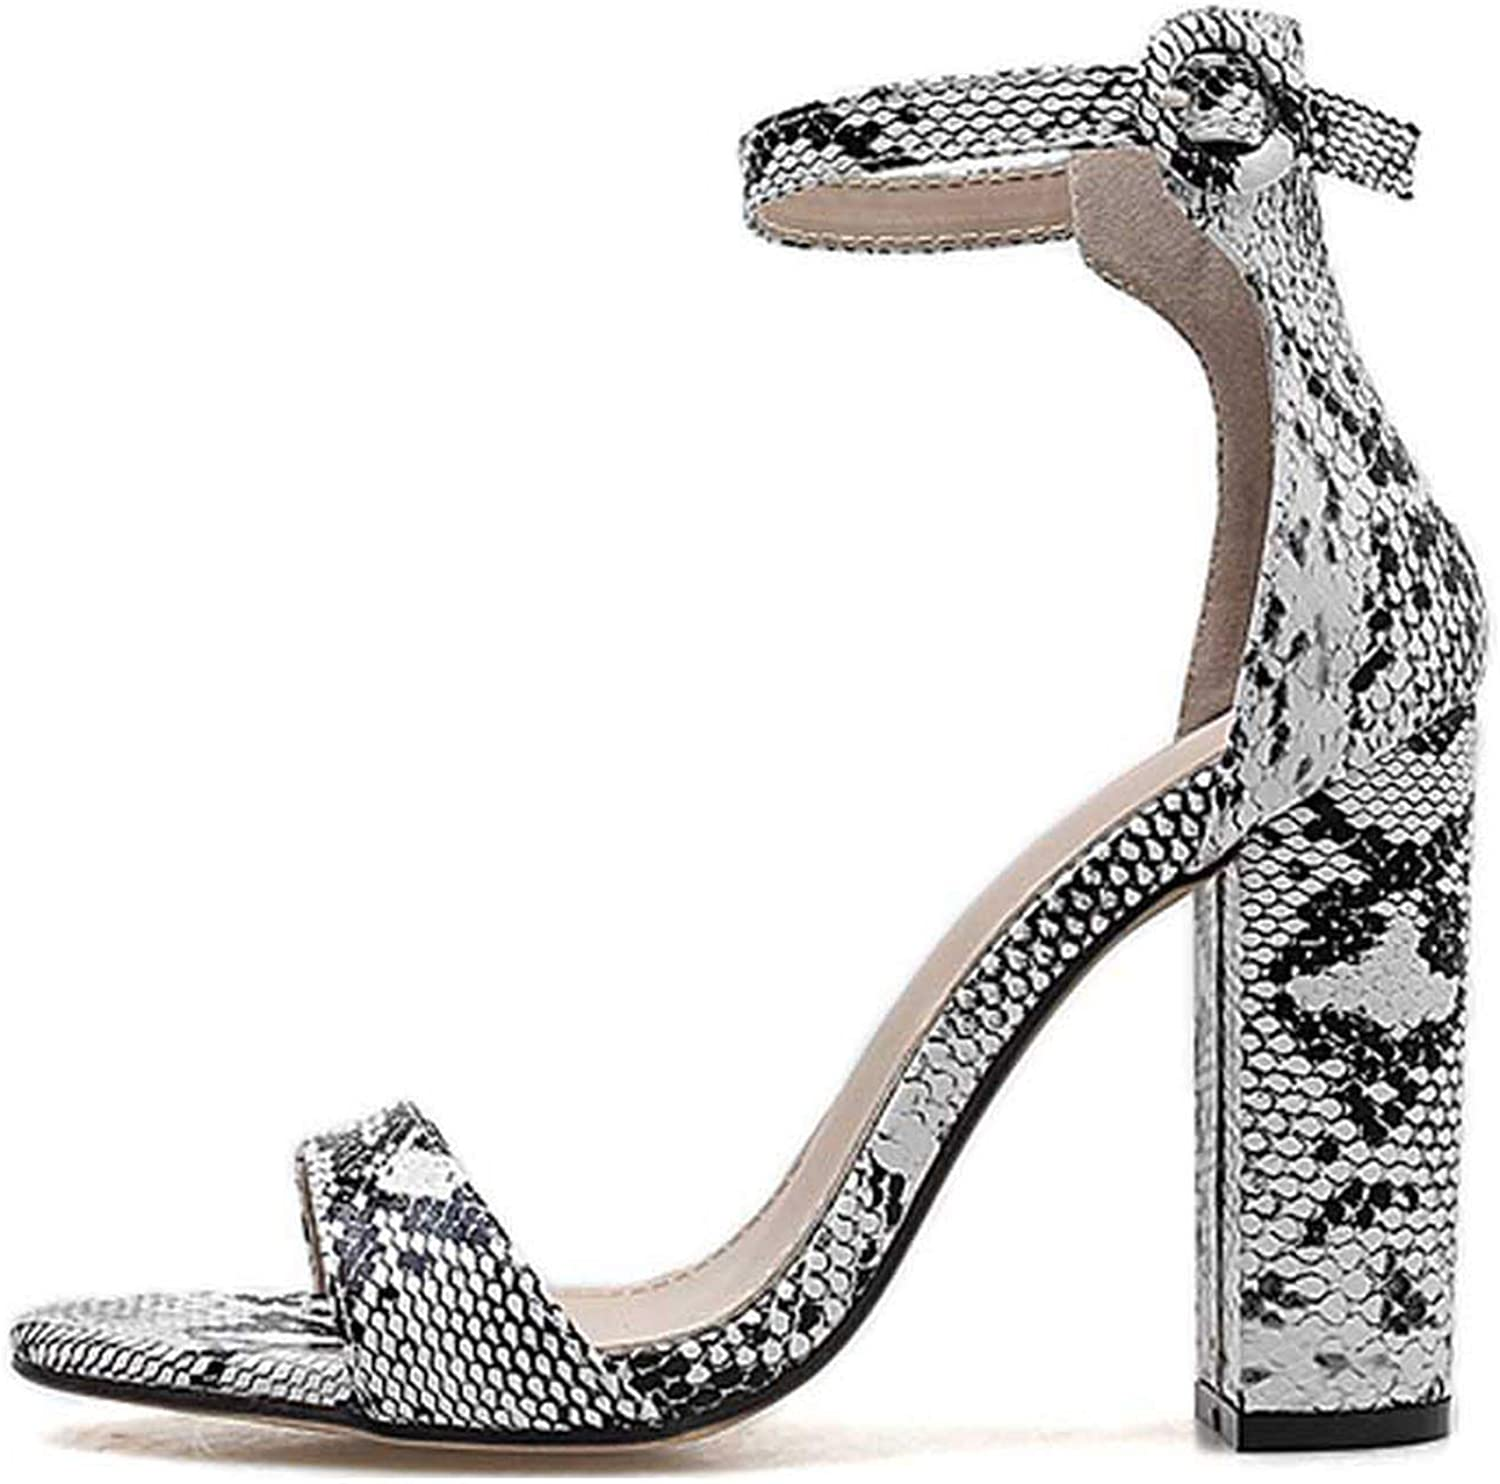 Women Ankle Strap Sandals Snake Print Square Heel Fashion Pointed Toe Ladies Fashion shoes New Women Sandals